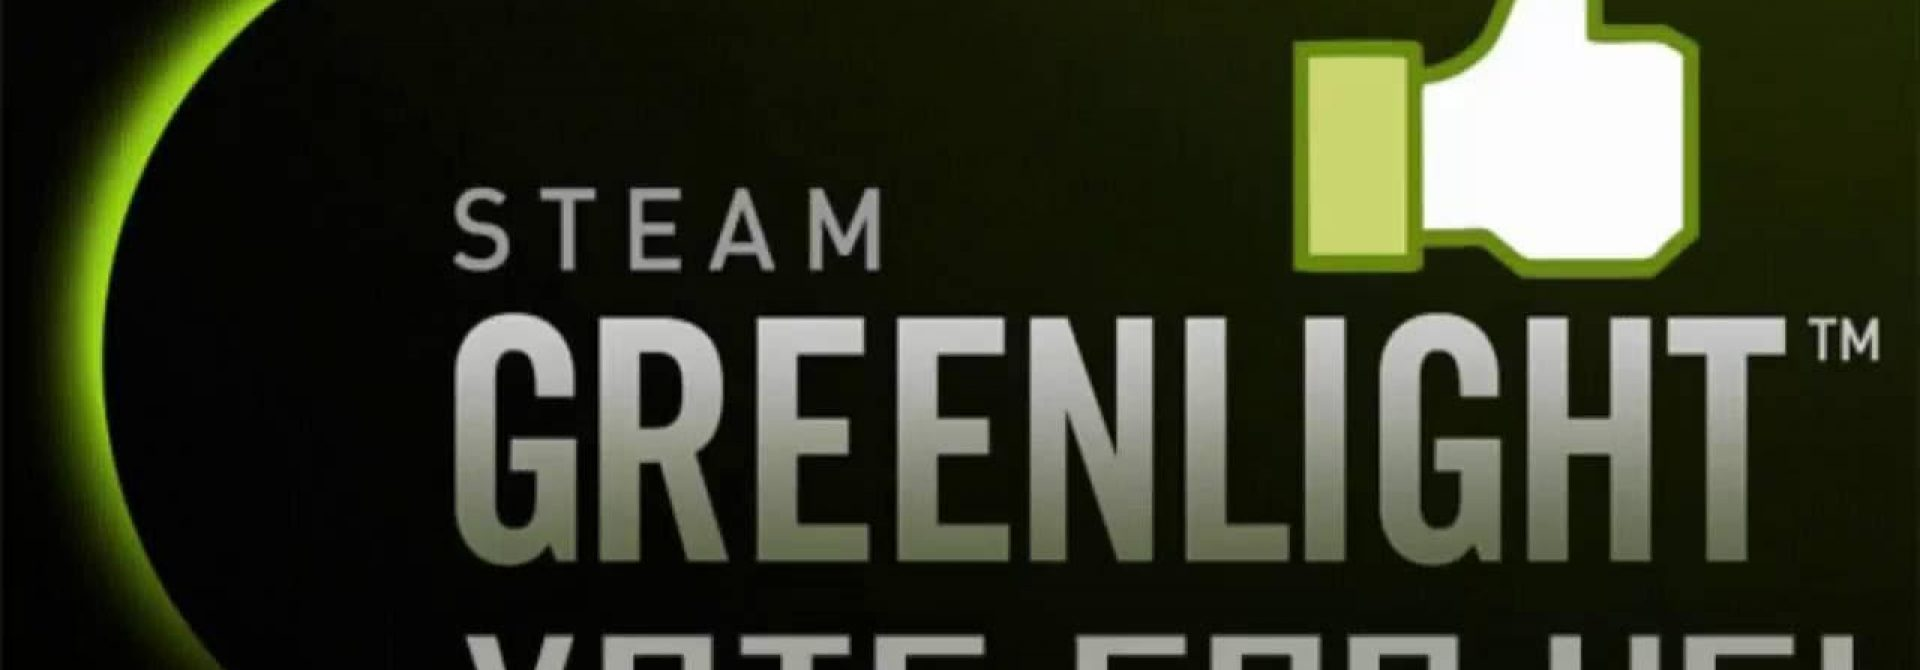 The Death Of Steam Greenlight: 5 Of Its Best Games